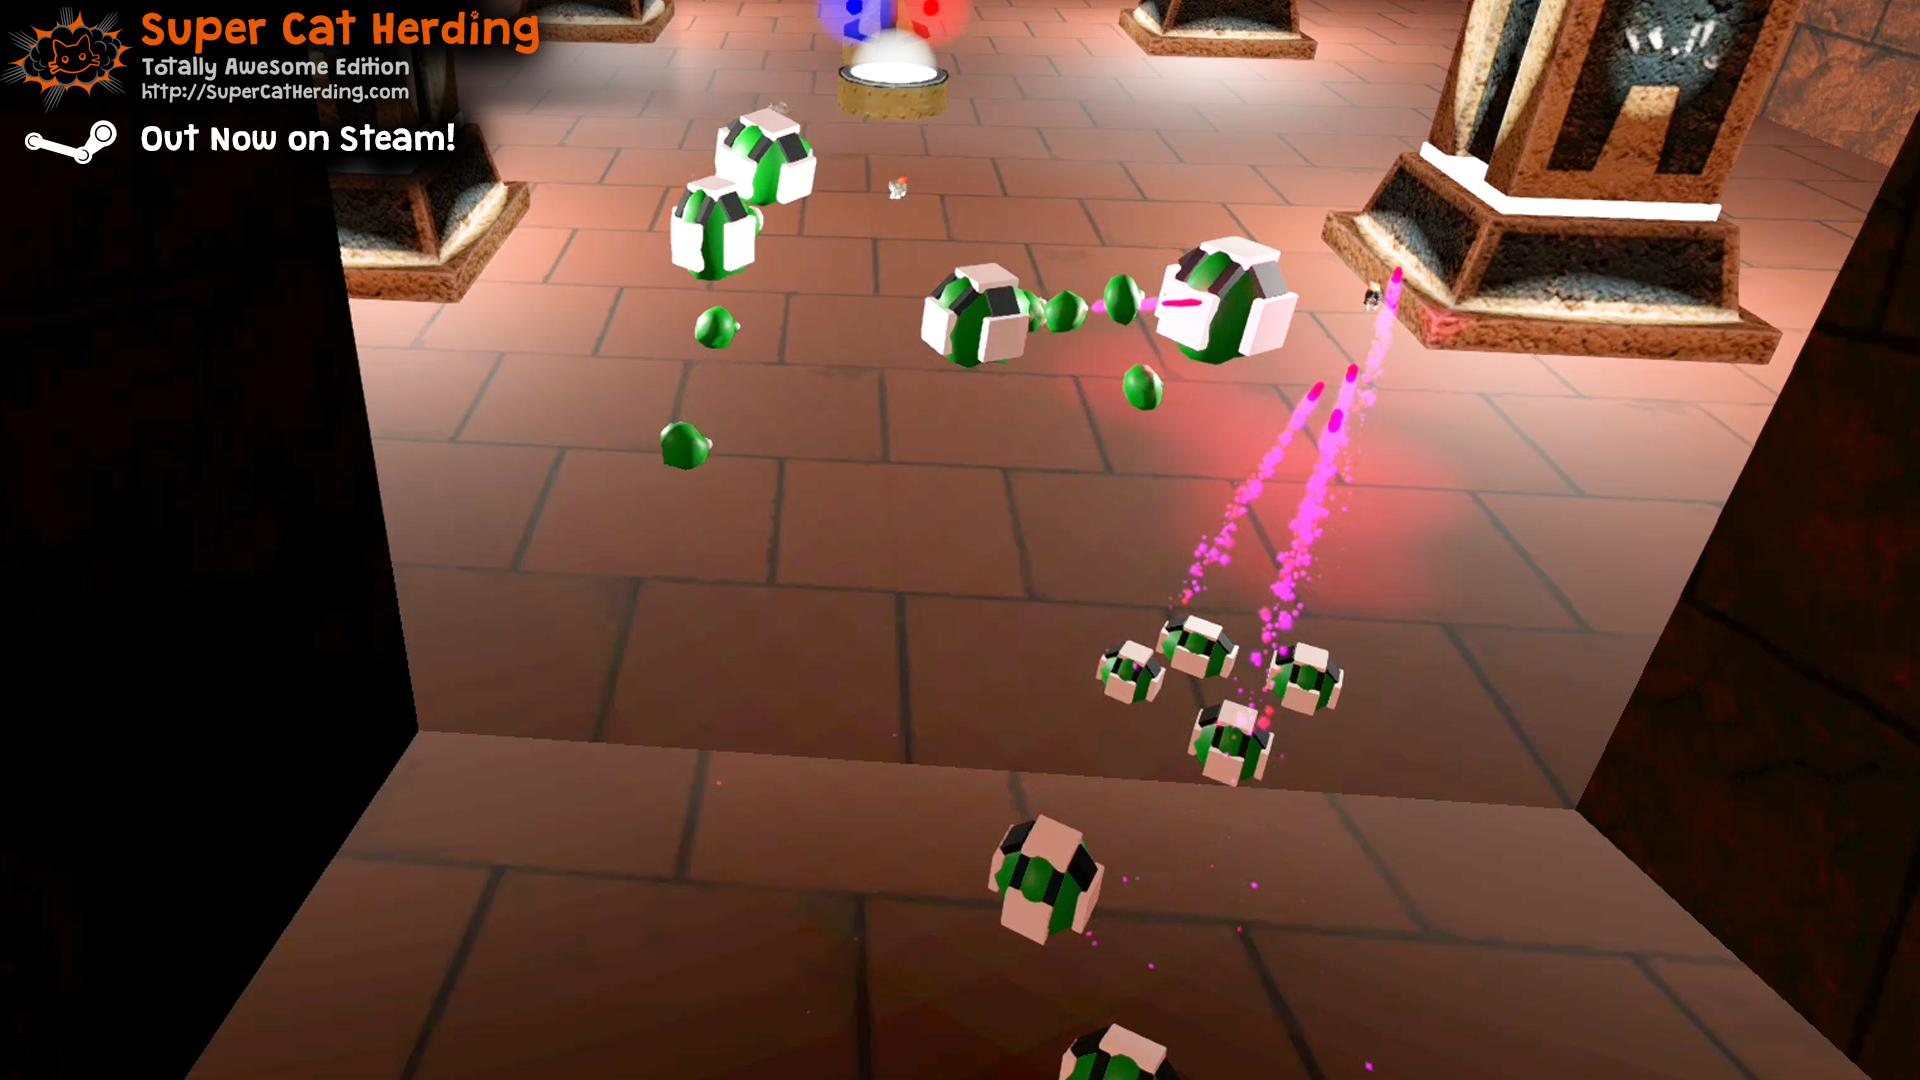 Goo Enemies in the New Cydonia Level - Super Cat Herding: Totally Awesome Edition